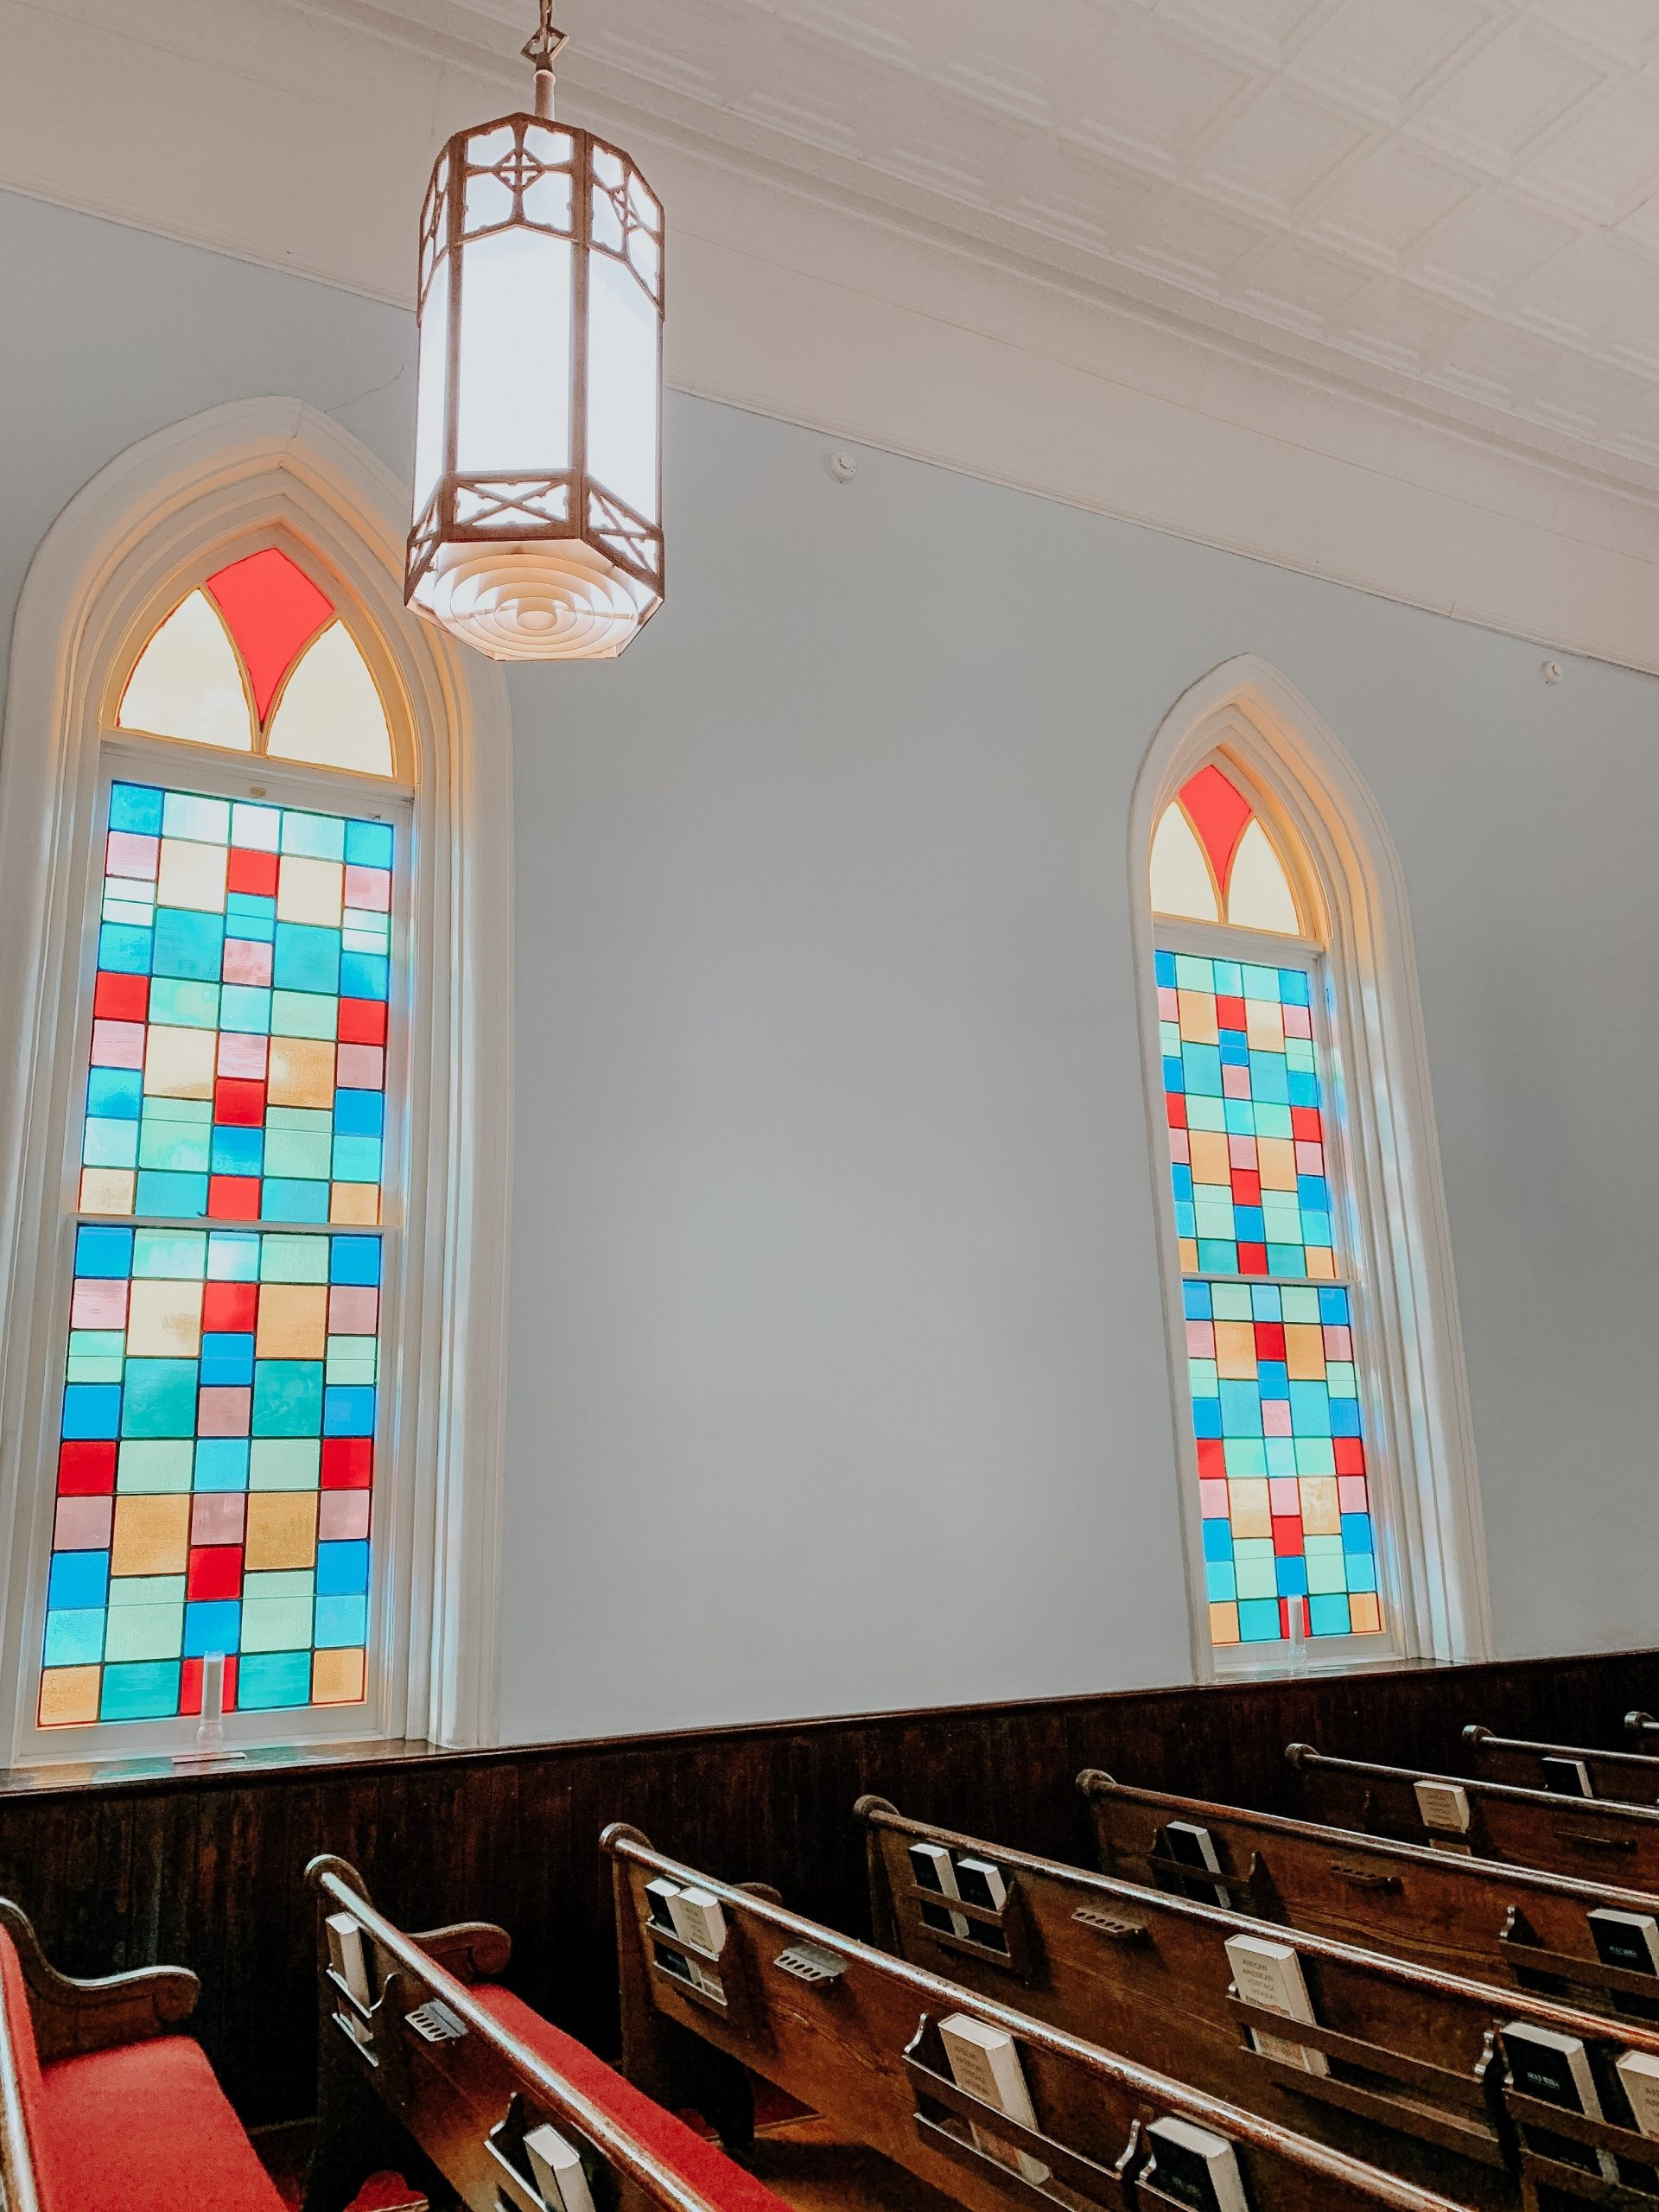 Dr. Martin Luther King Jr. in Montgomery, Alabama: Dexter Avenue King Memorial Baptist Church and Parsonage